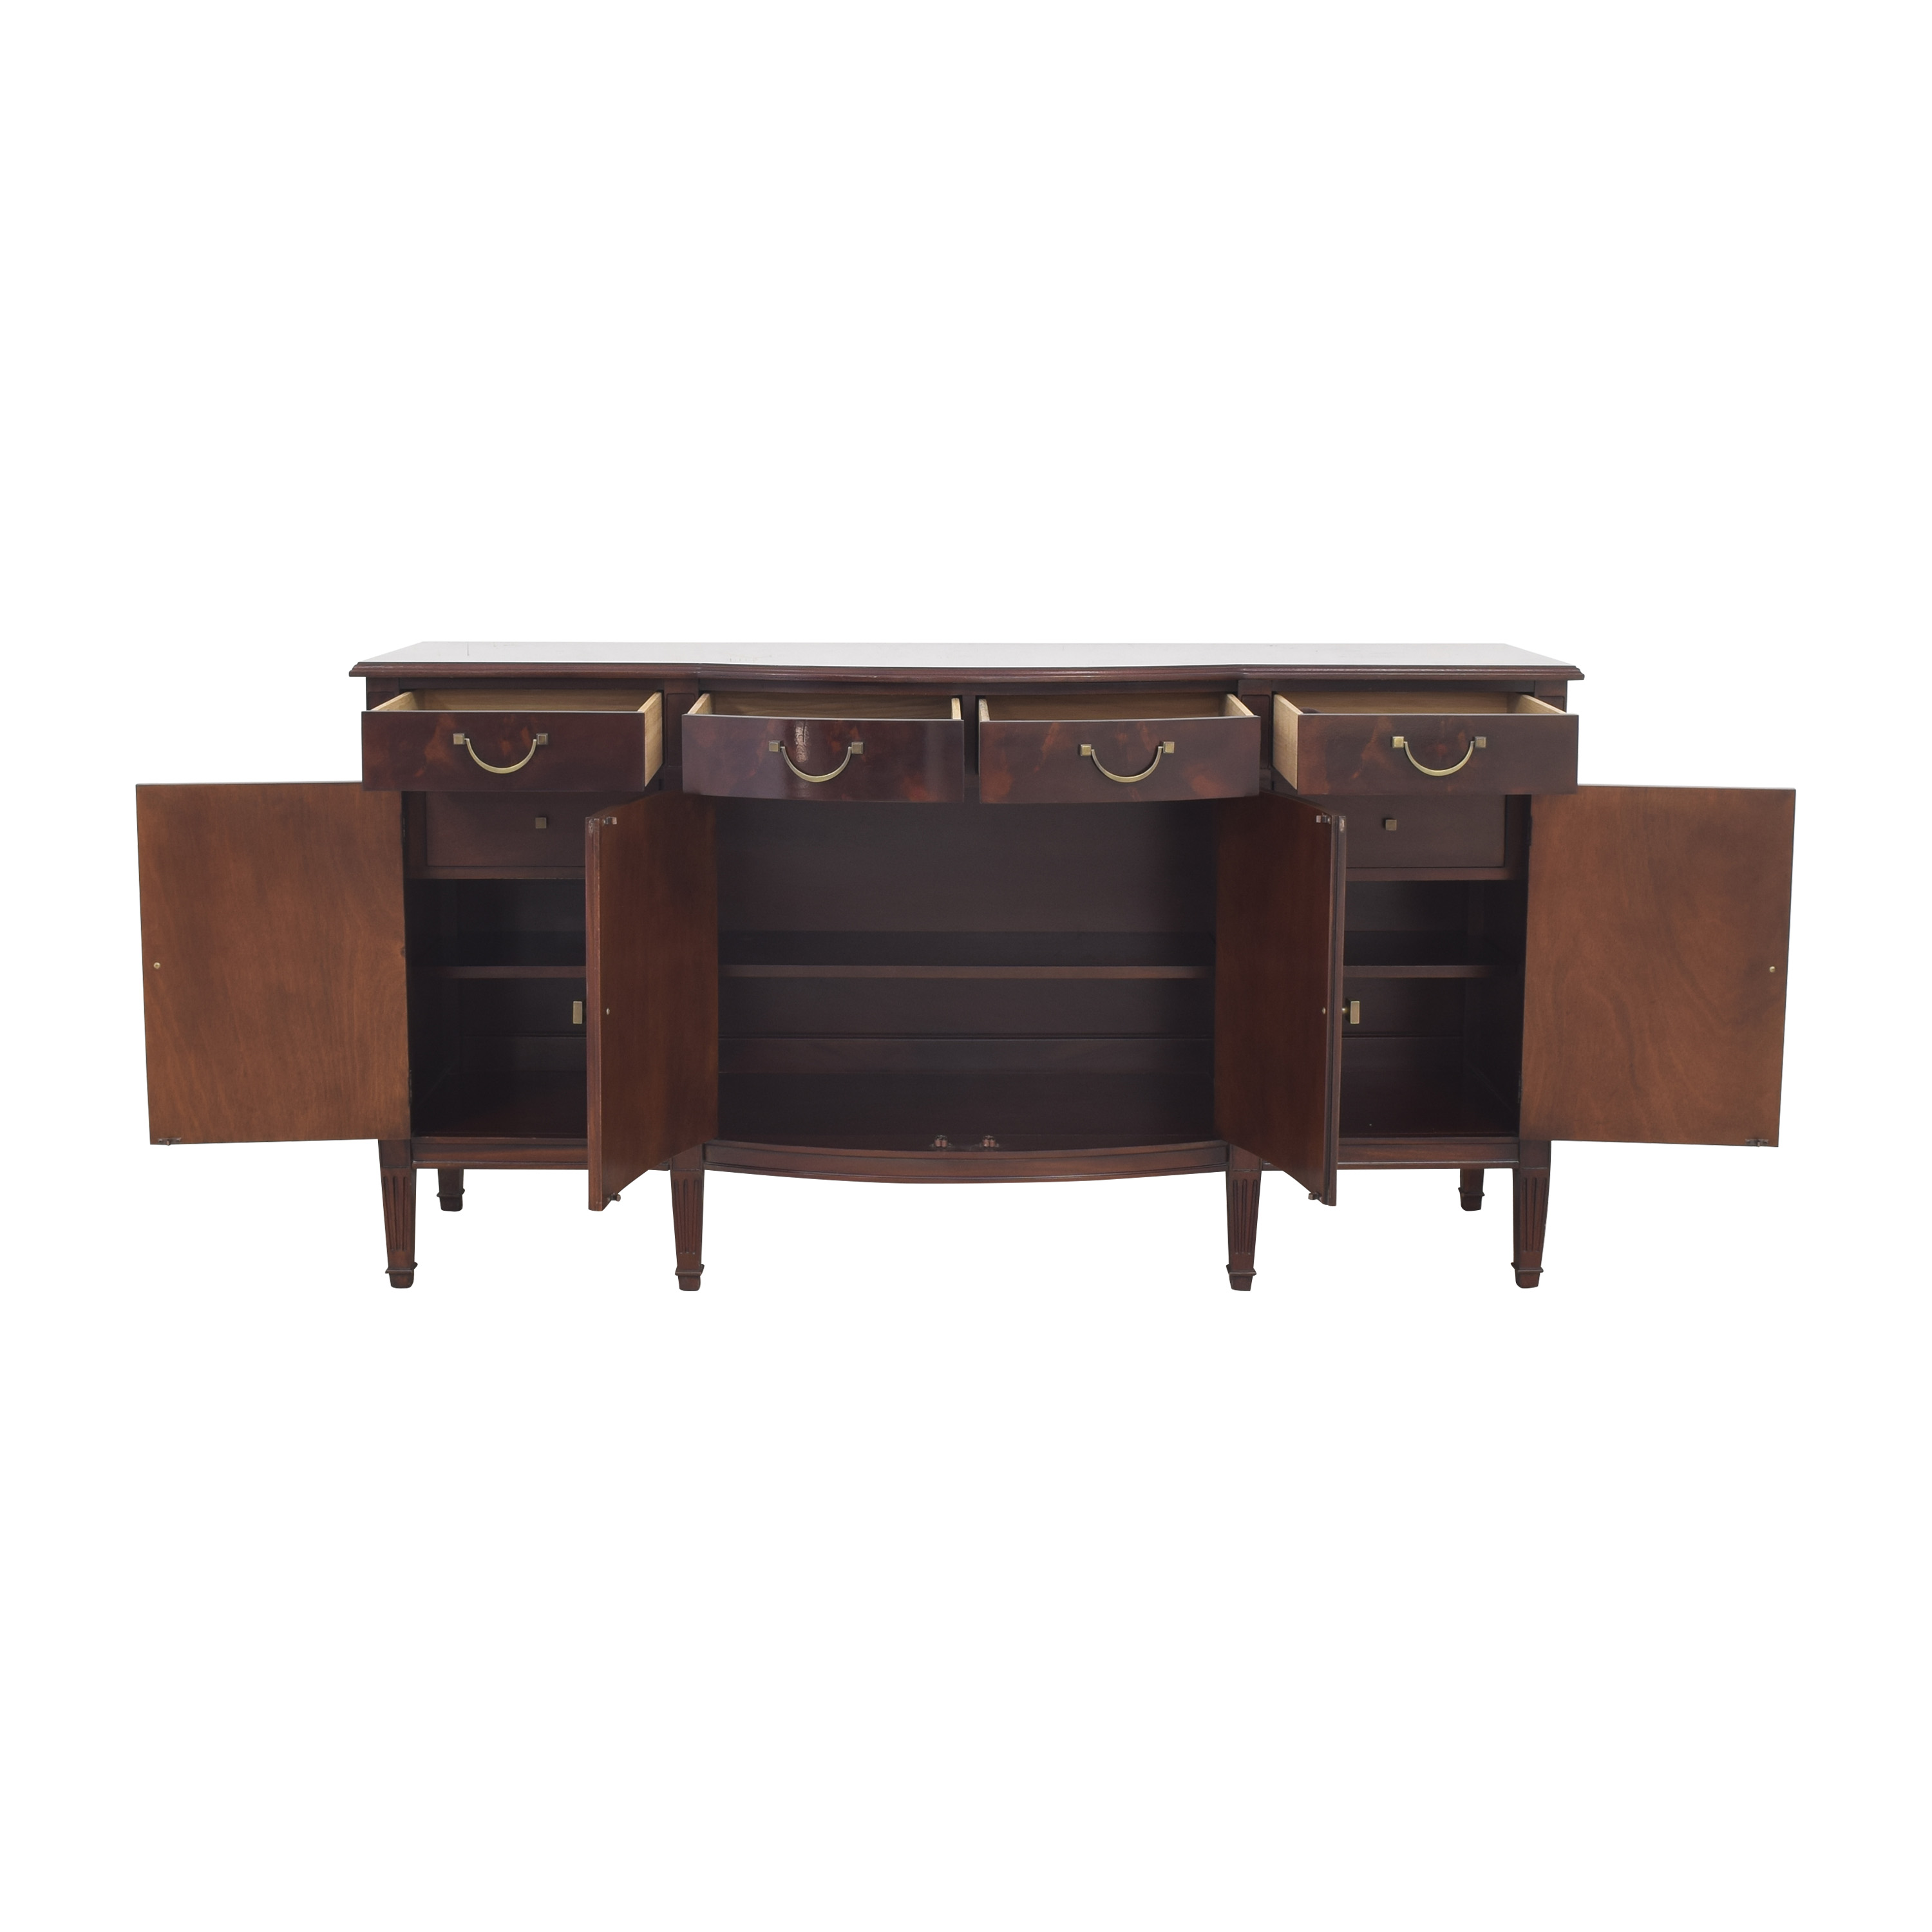 Hickory Chair Hickory Chair Buffet Sideboard by Mariette Himes Gomez nyc